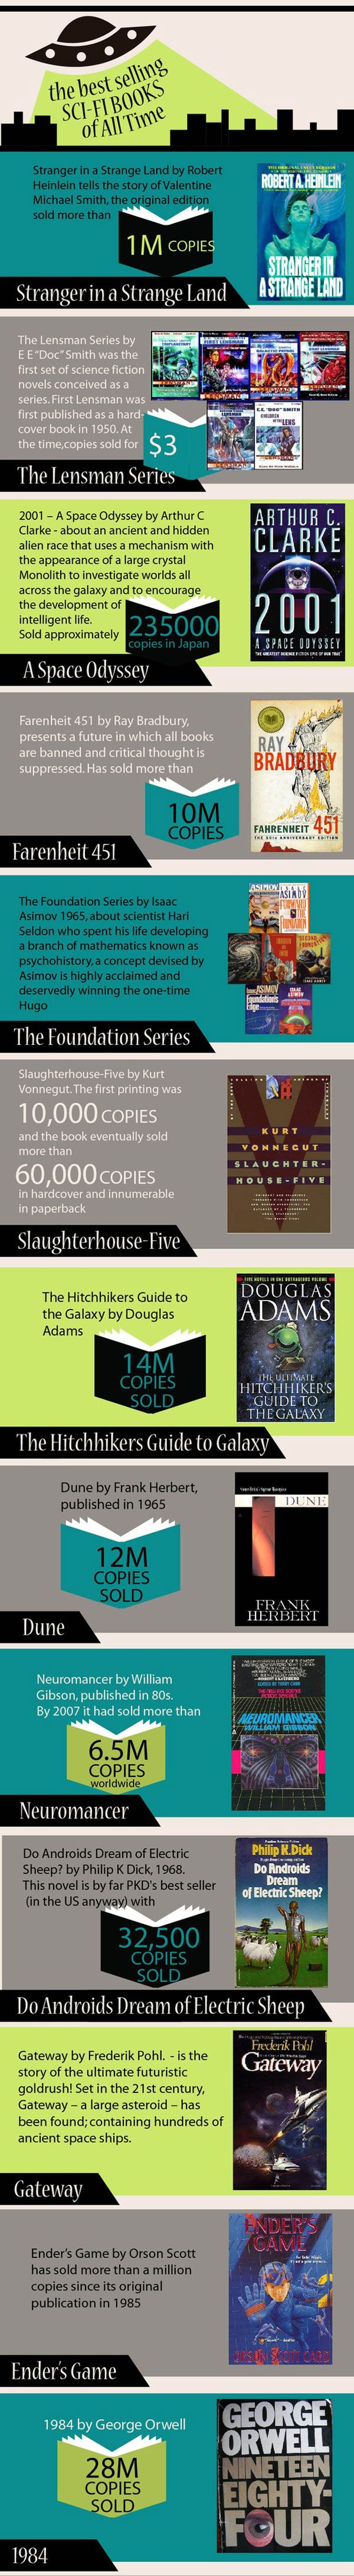 The best-selling sci-fi books of all time